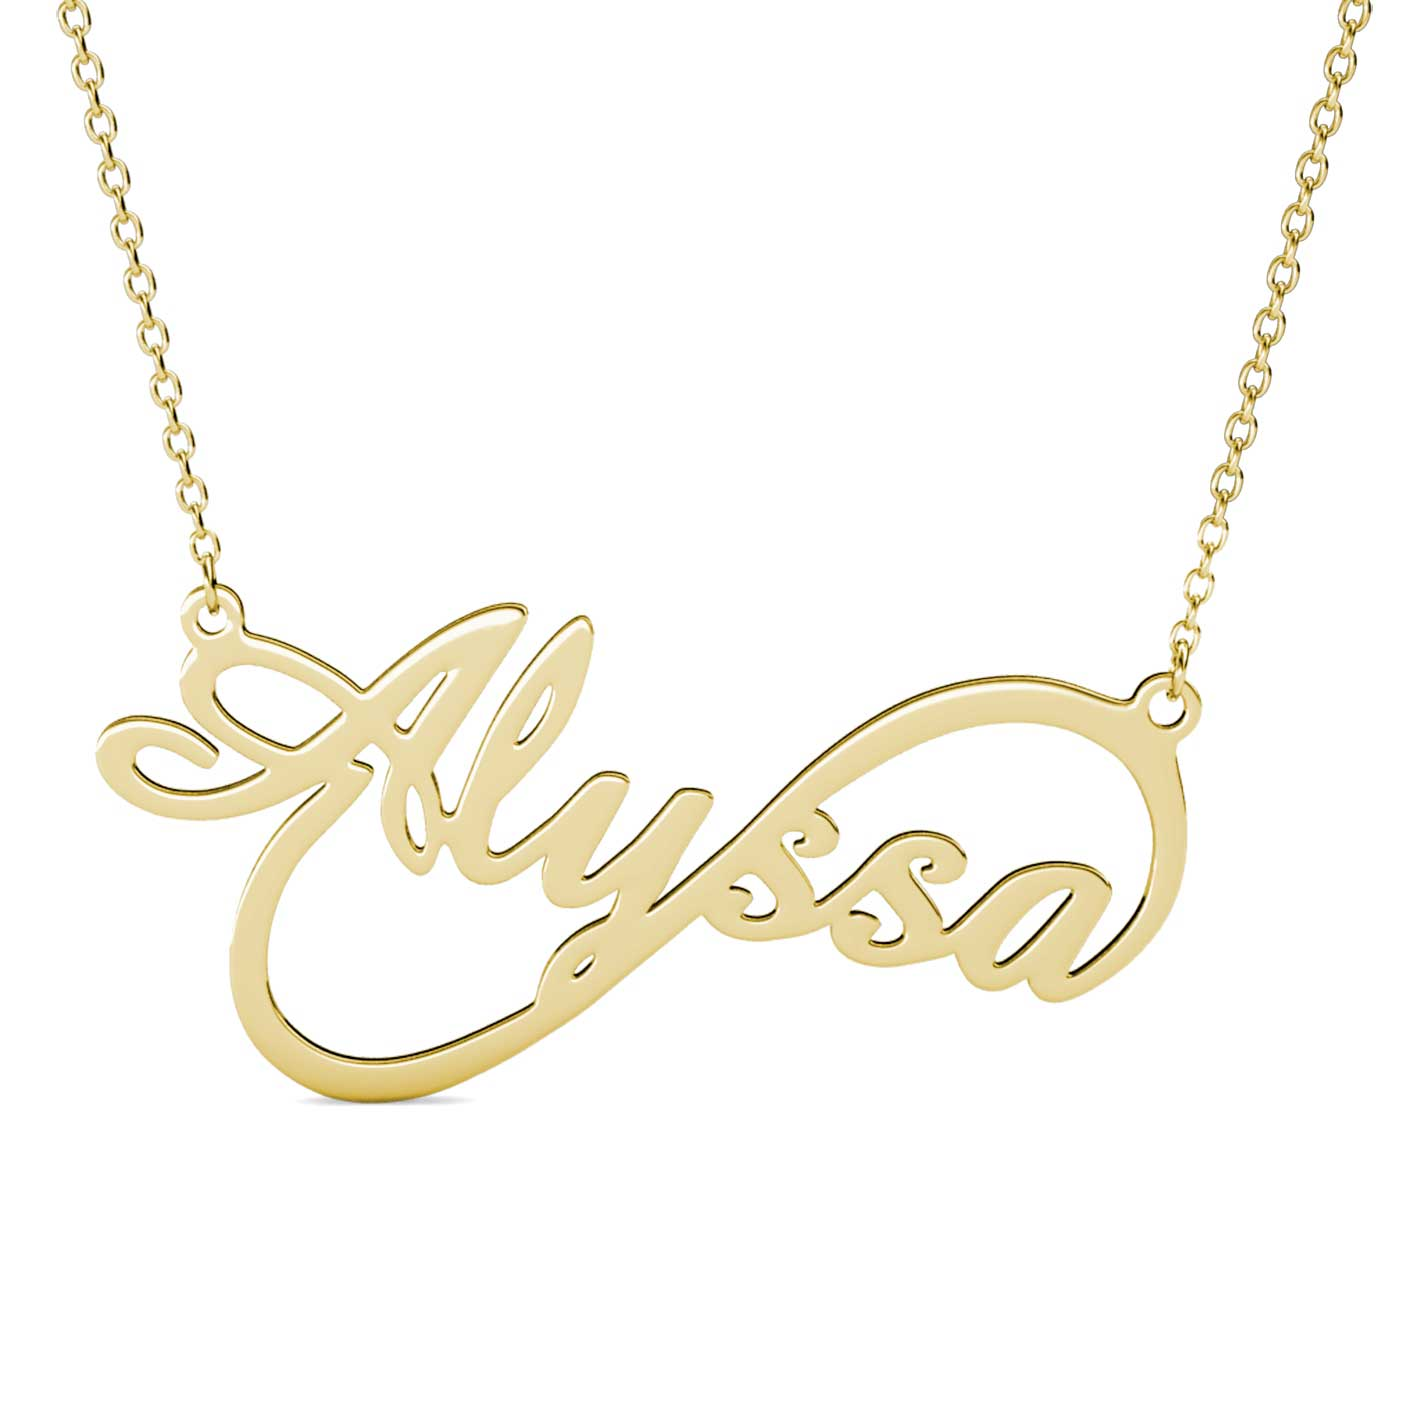 A Guide To Buying Custom Name Necklaces